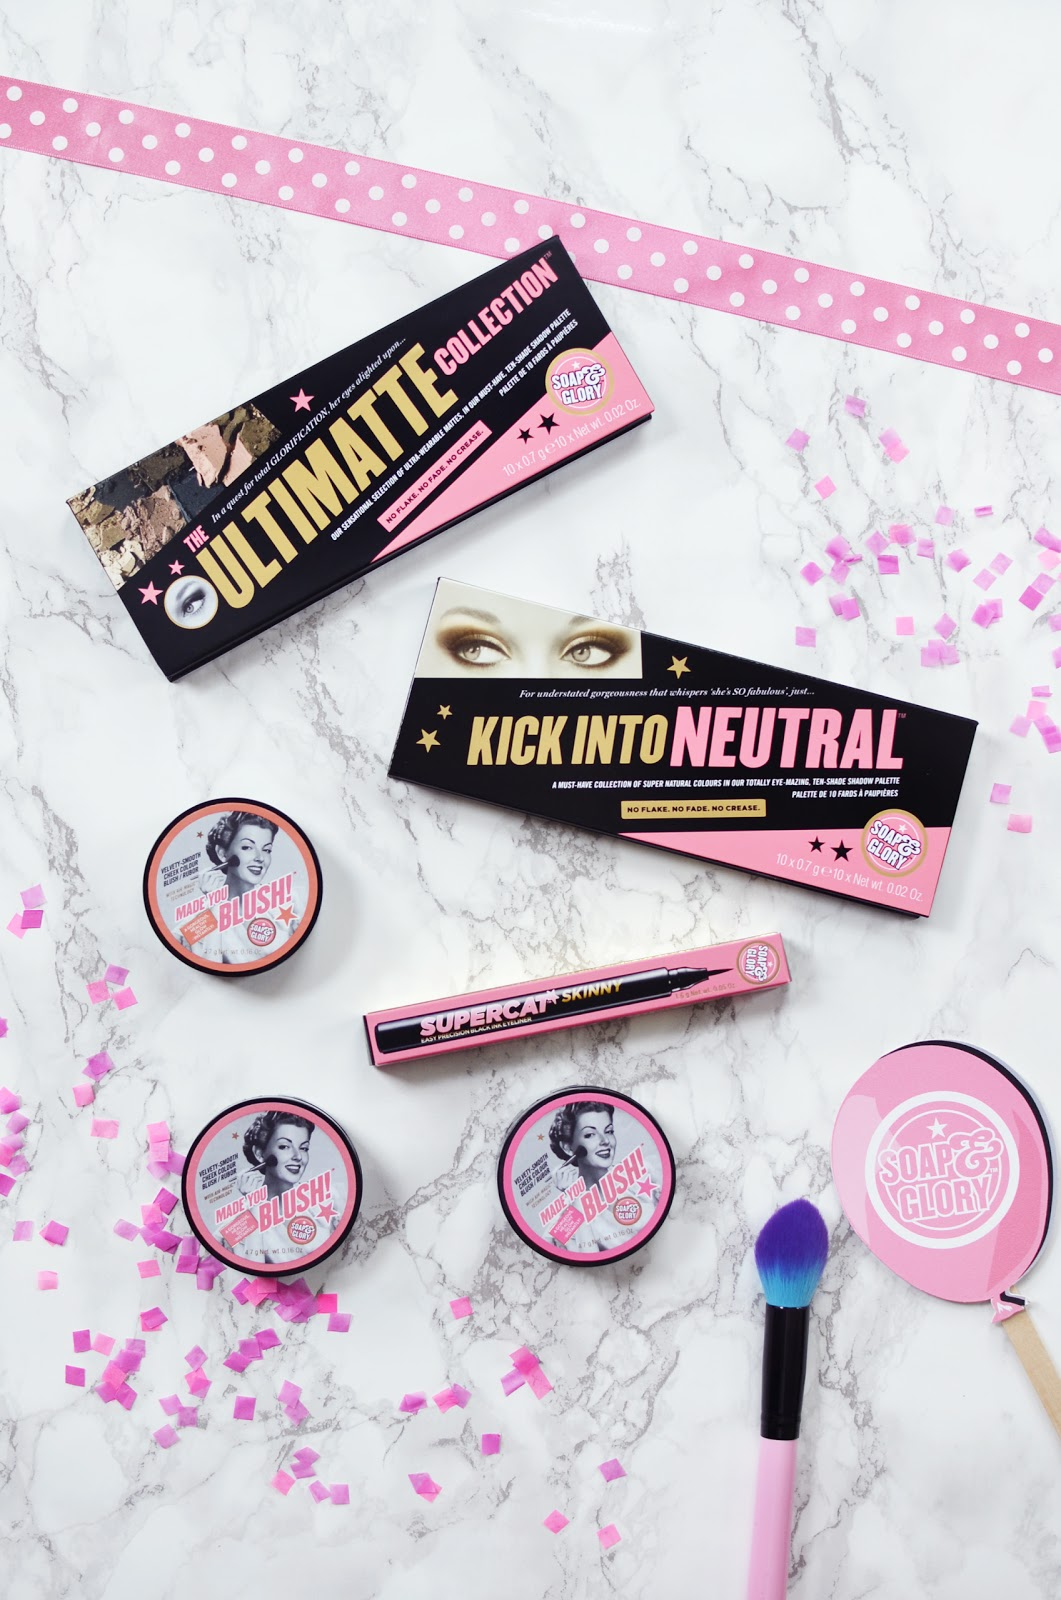 Soap and glory eyeshadow palette, soap and glory made you blush